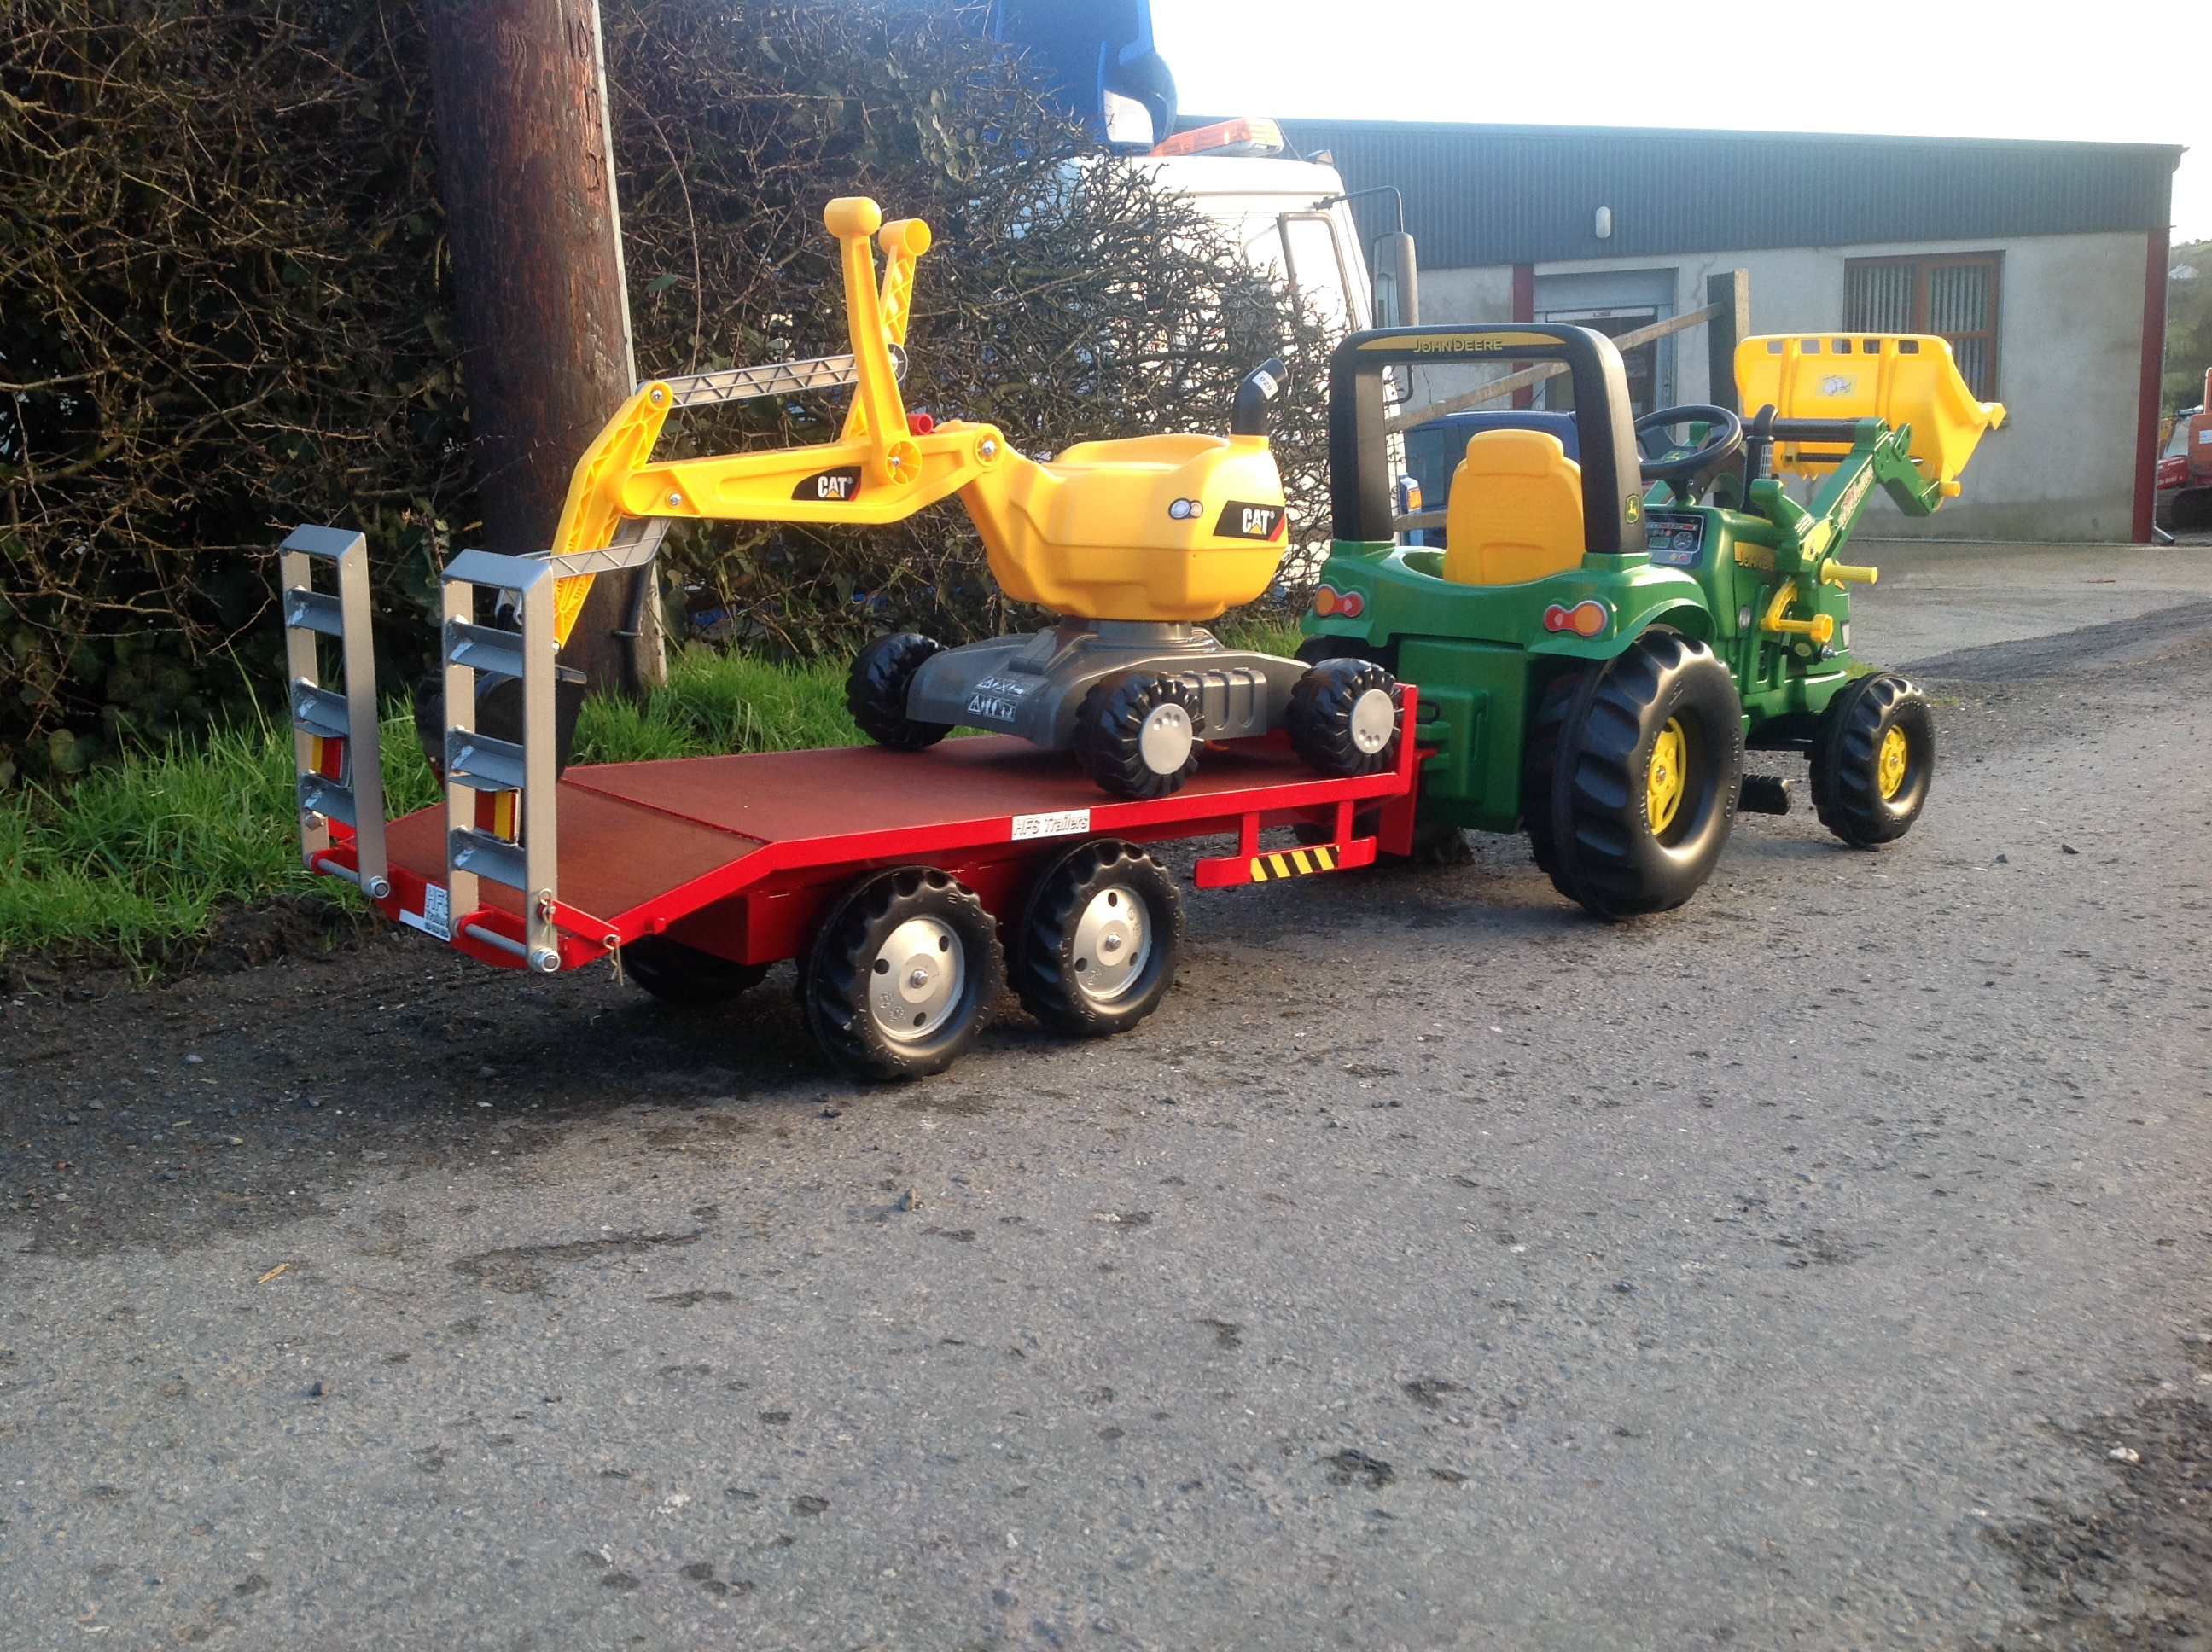 Metal Pedal Tractor Loader : Hearty farm toys hfs metal trailers